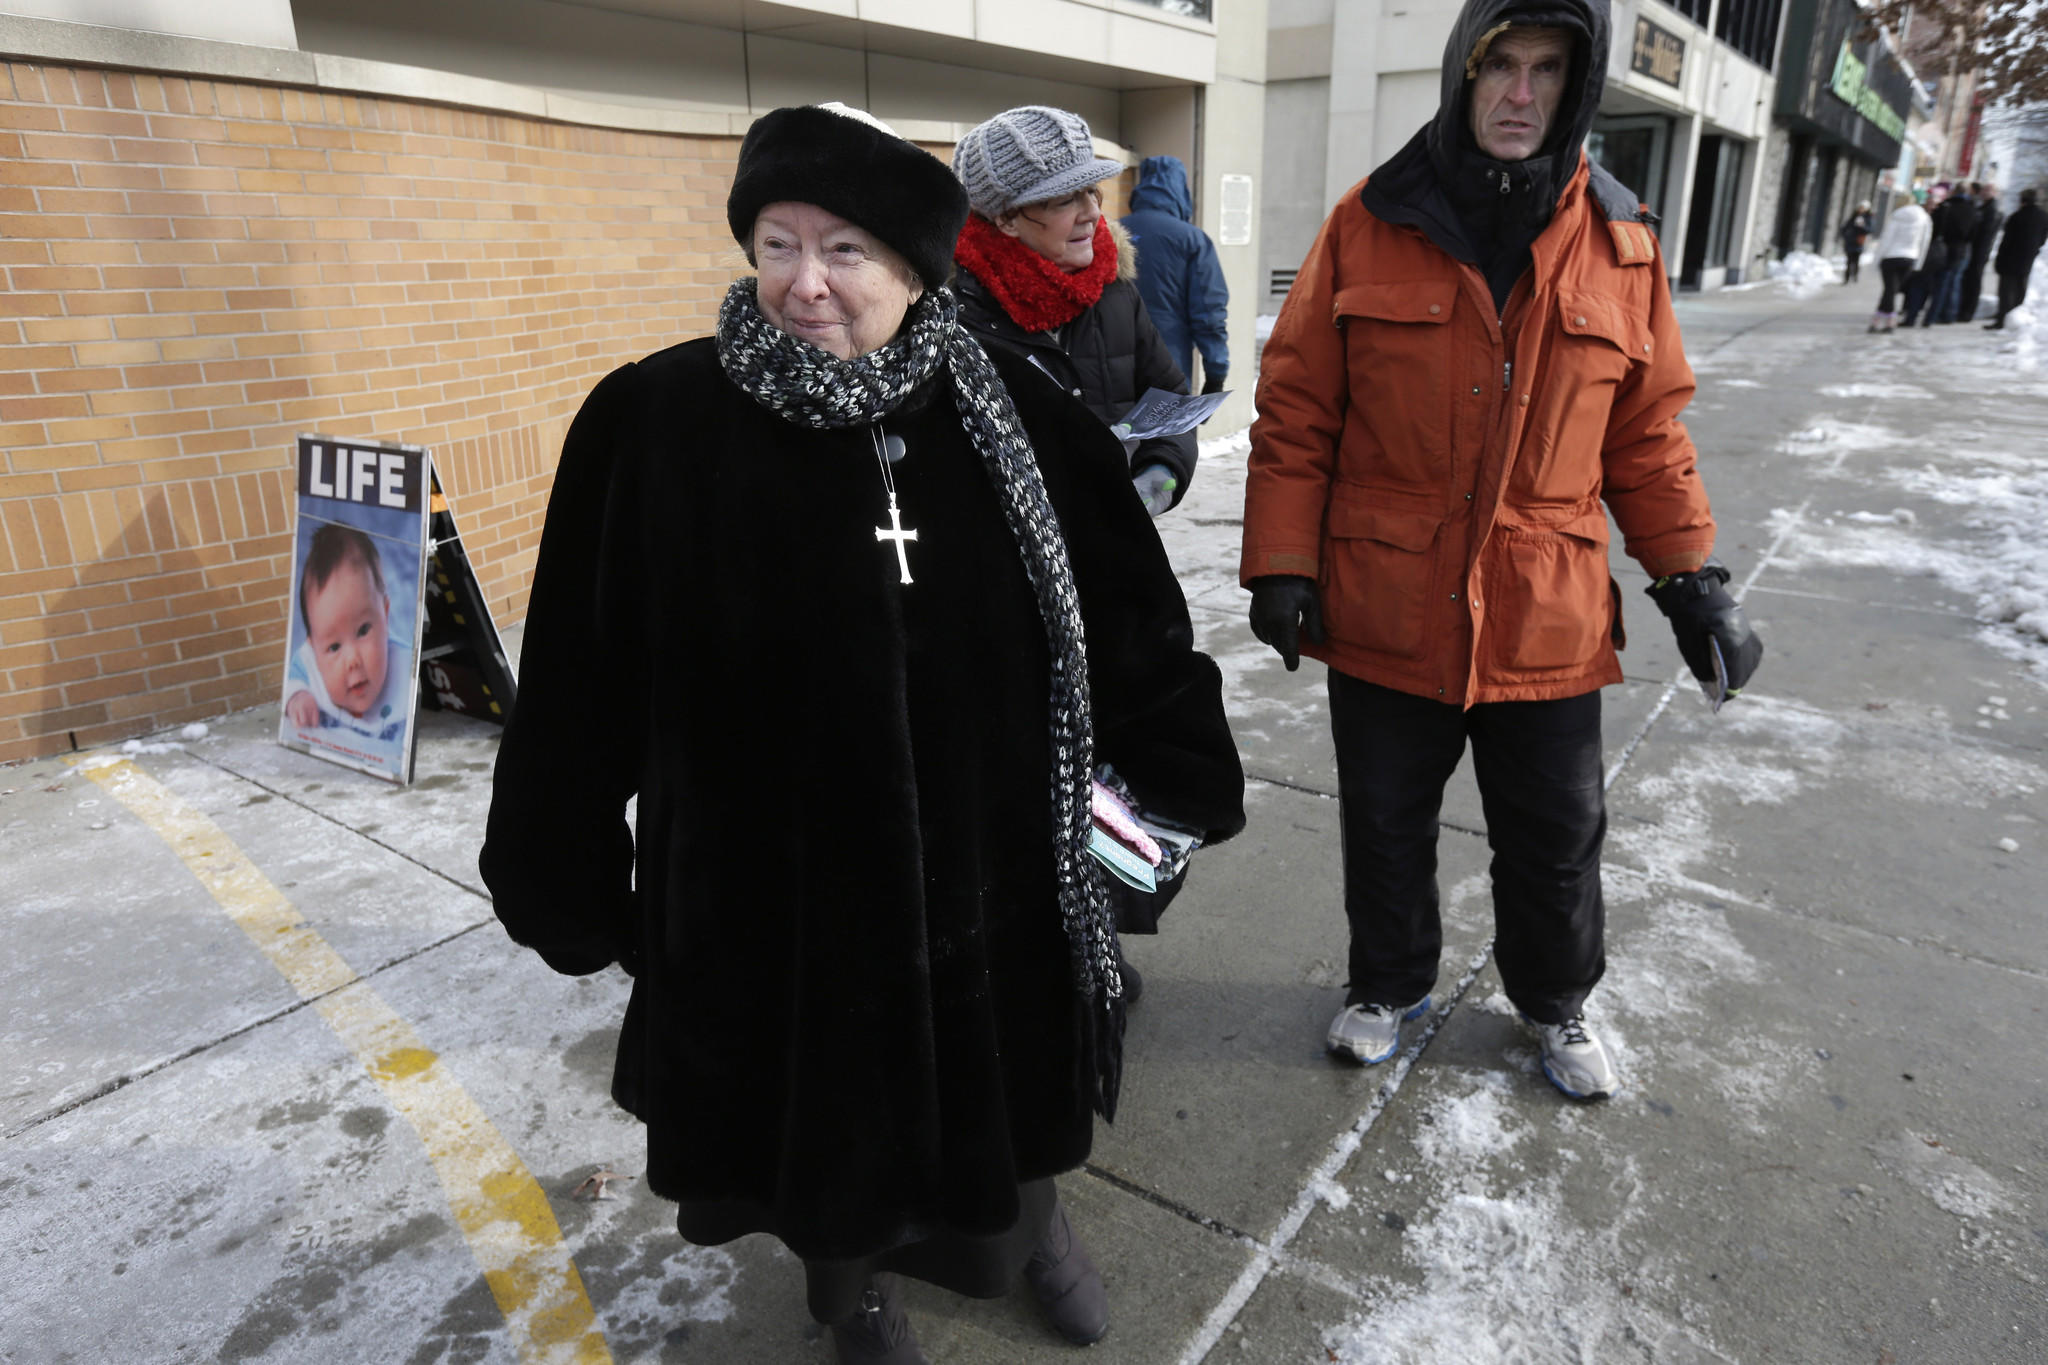 Eleanor McCullen of Boston, left, stands at the painted edge of a buffer zone outside a Planned Parenthood location in Boston.